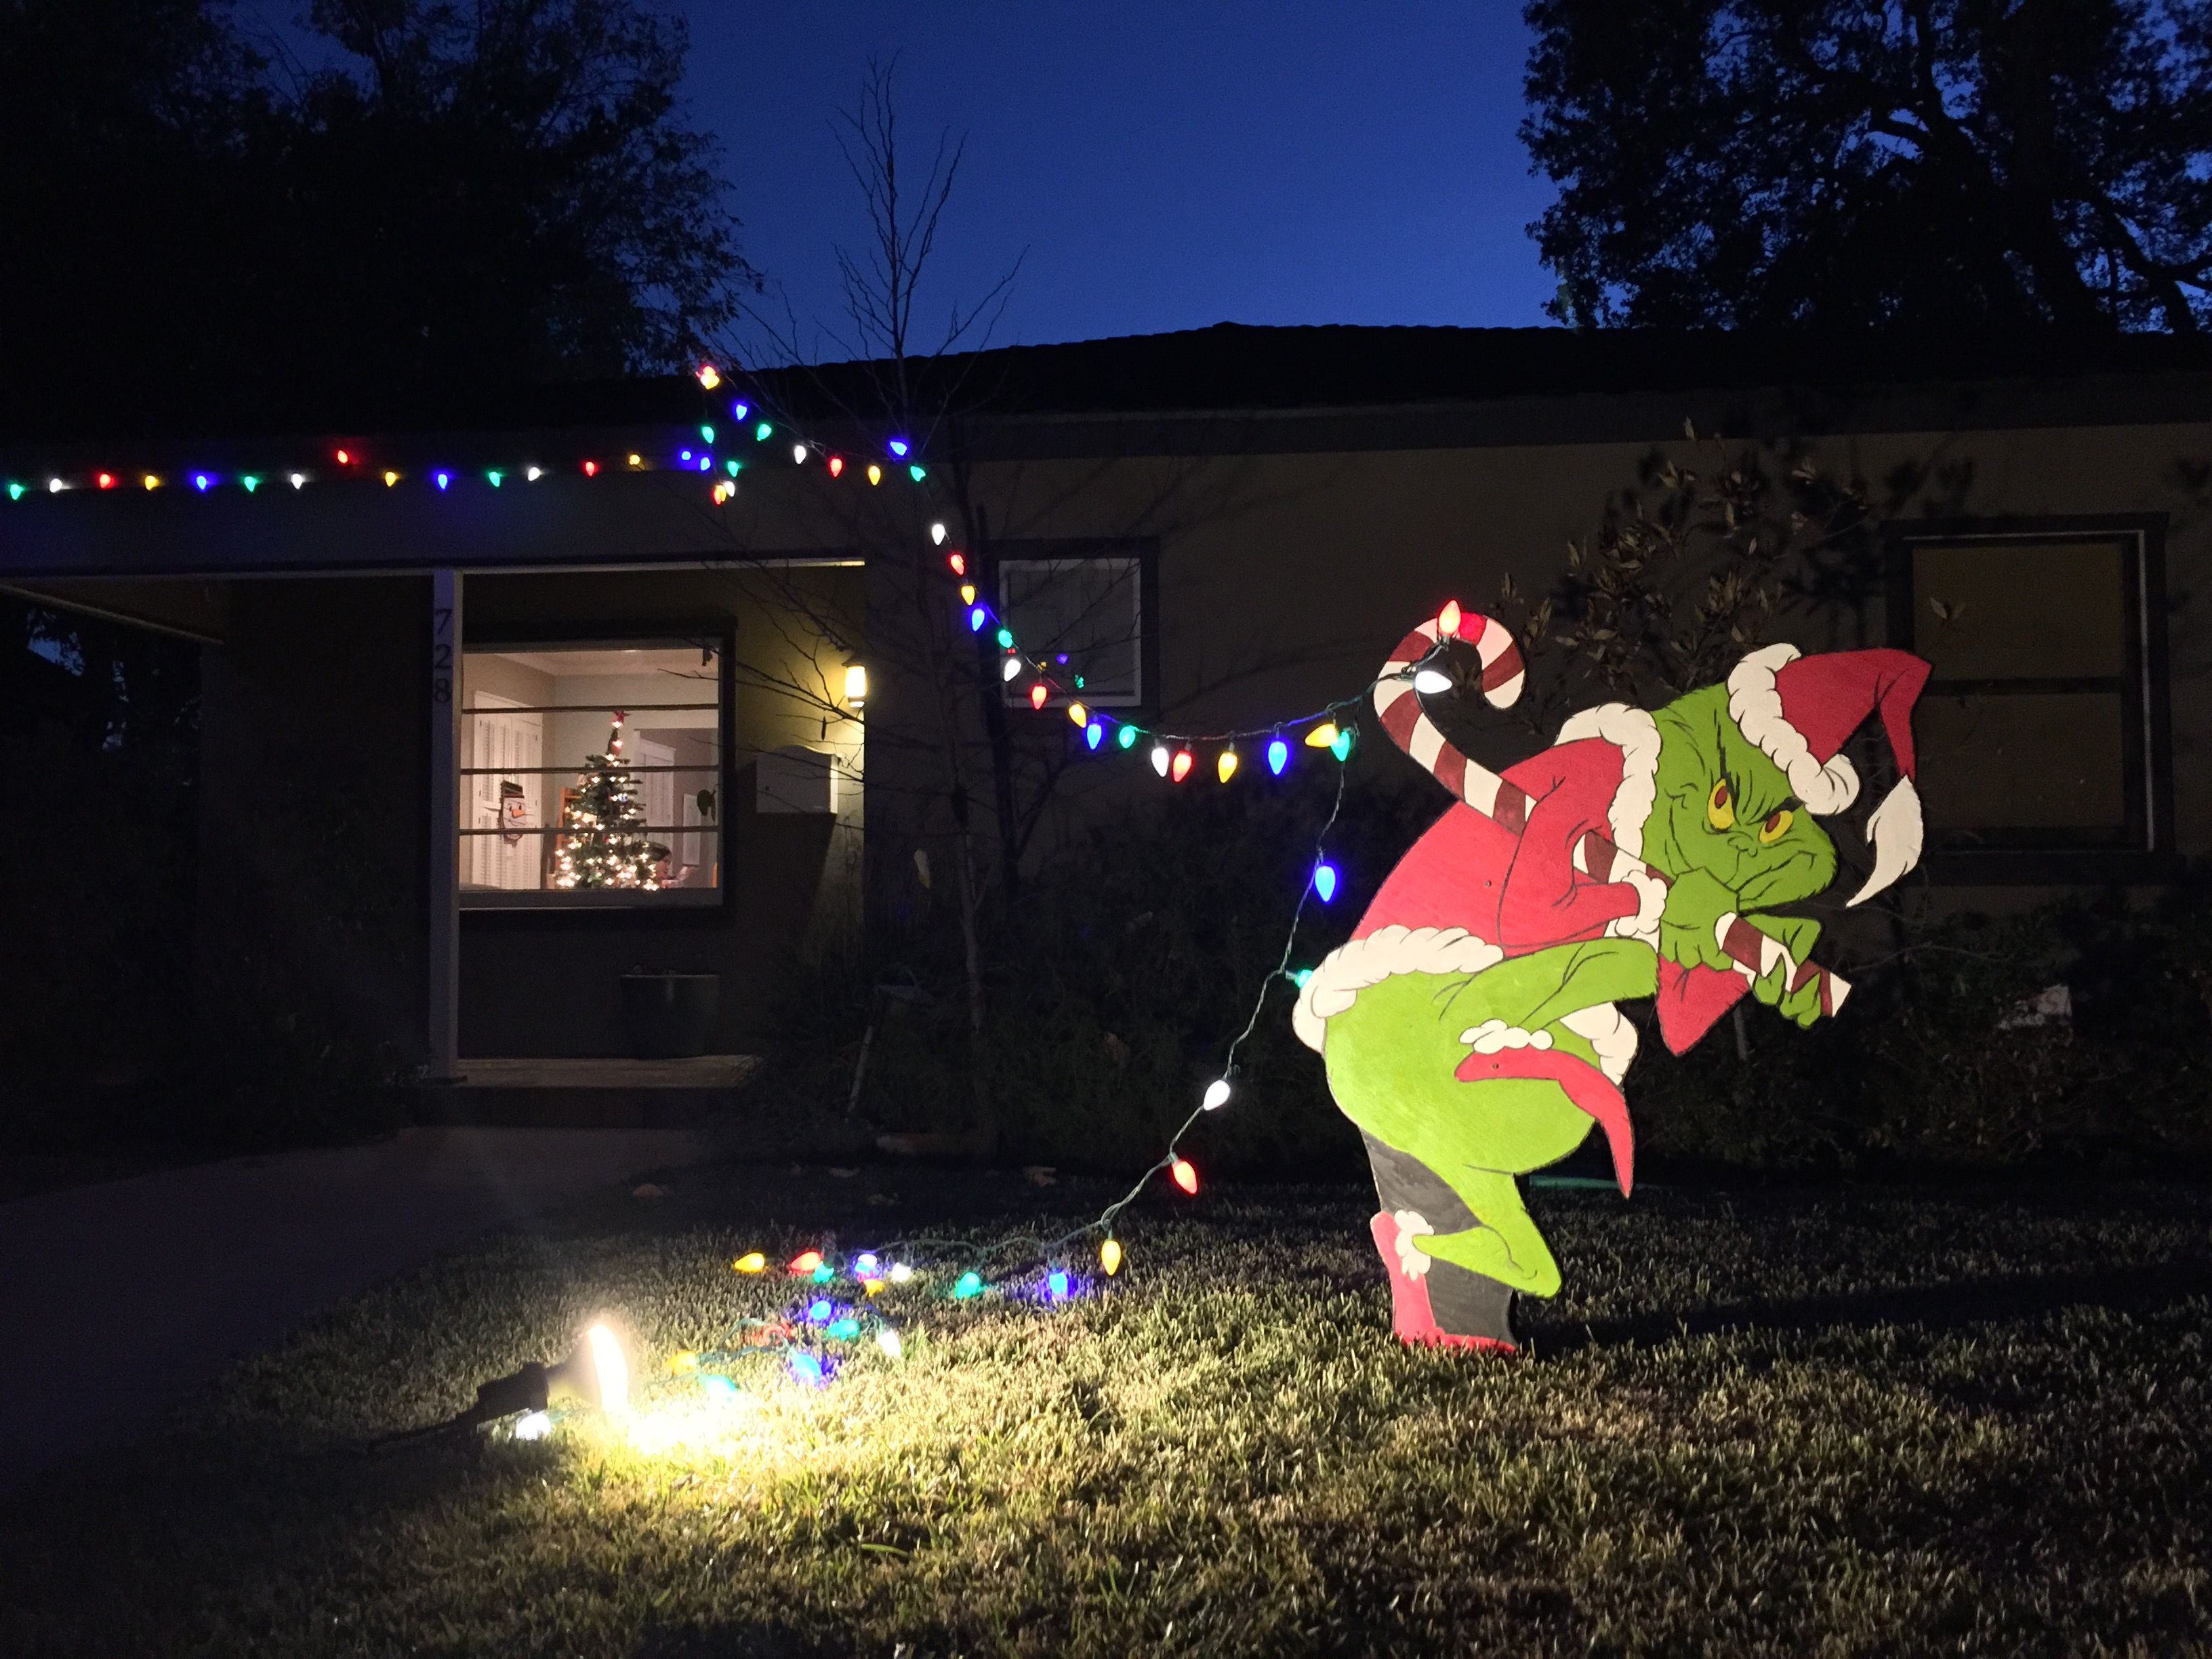 The Grinch Is Stealing My Christmas Lights Grinch Christmas Lights Grinch Christmas Decorations Grinch Christmas Decorations Outdoor